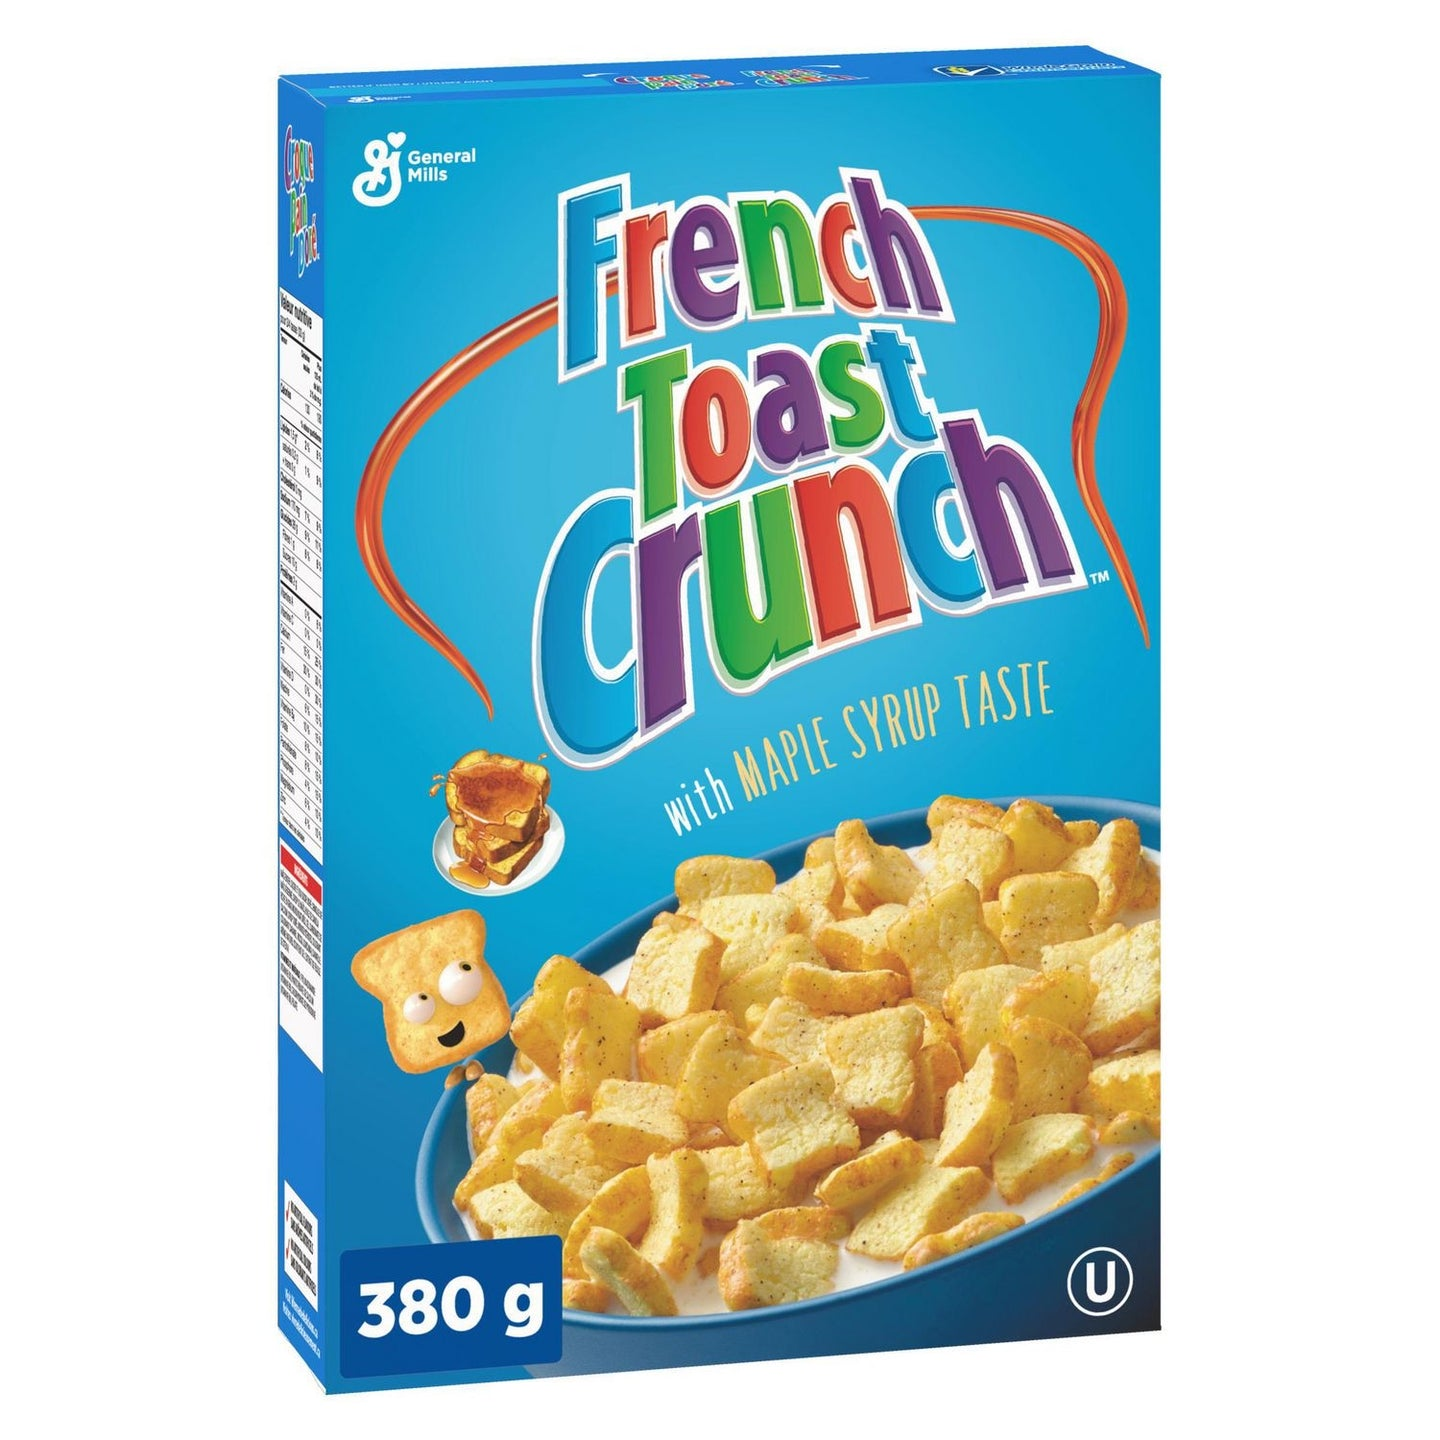 French Toast crunch cereal (Canada)